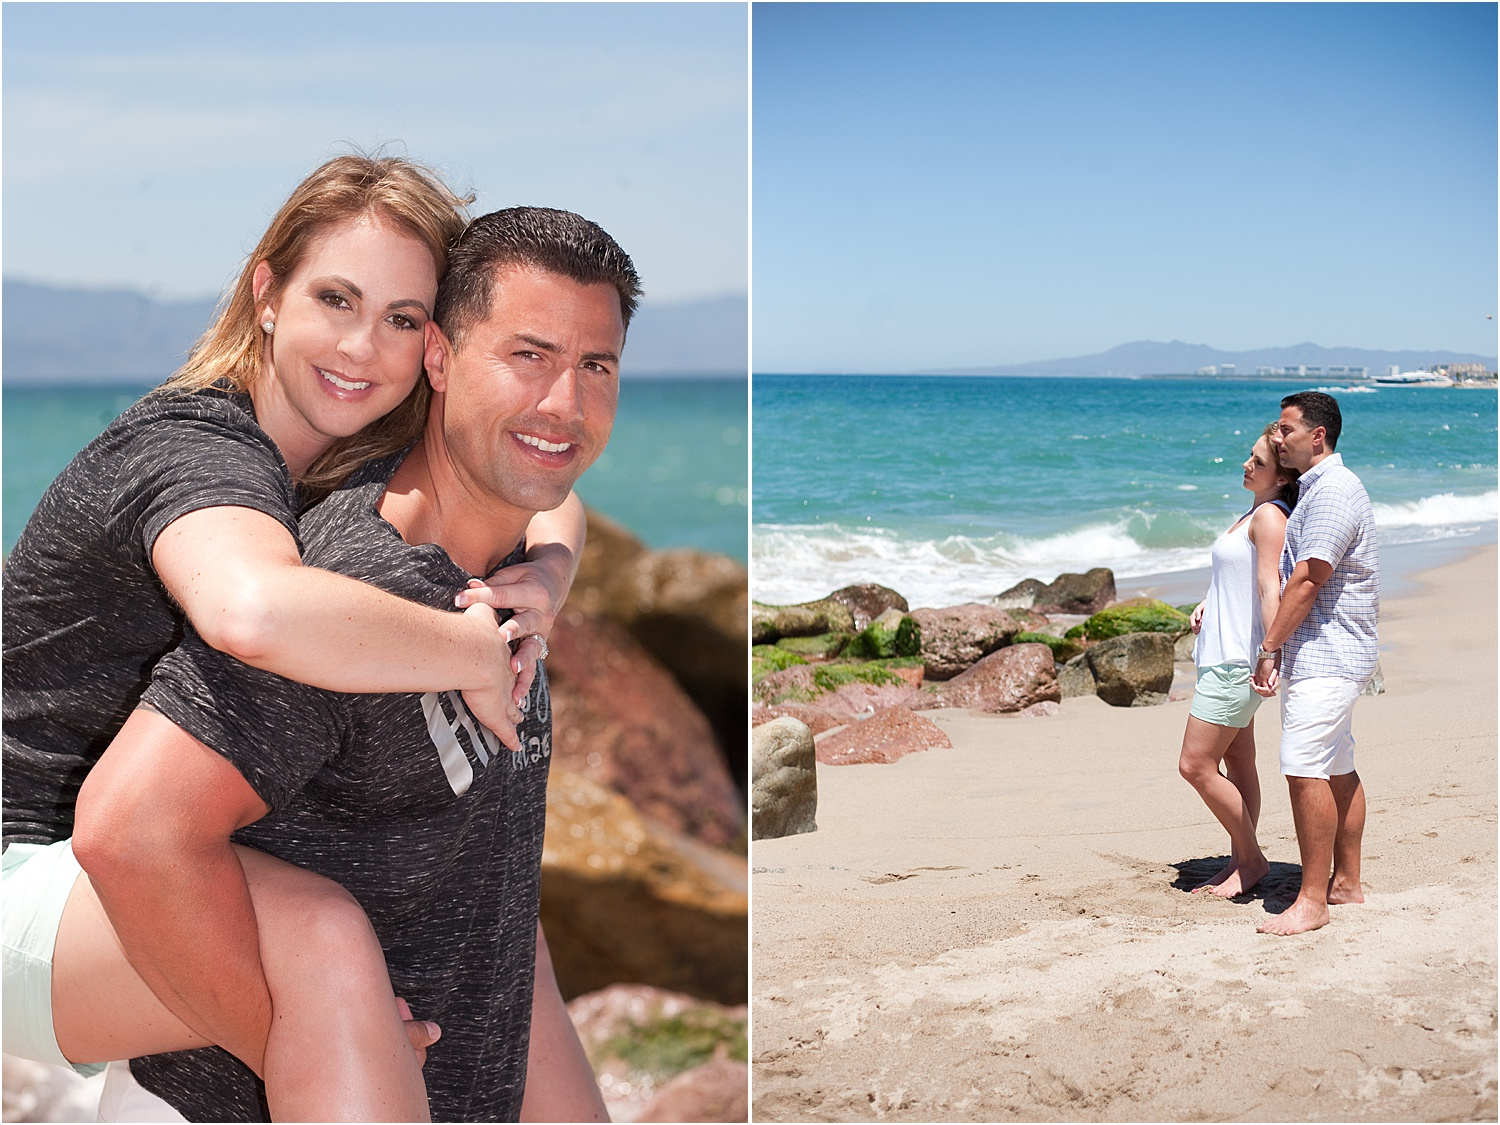 Image: Same session, same beach, one photo with flash and one photo without.